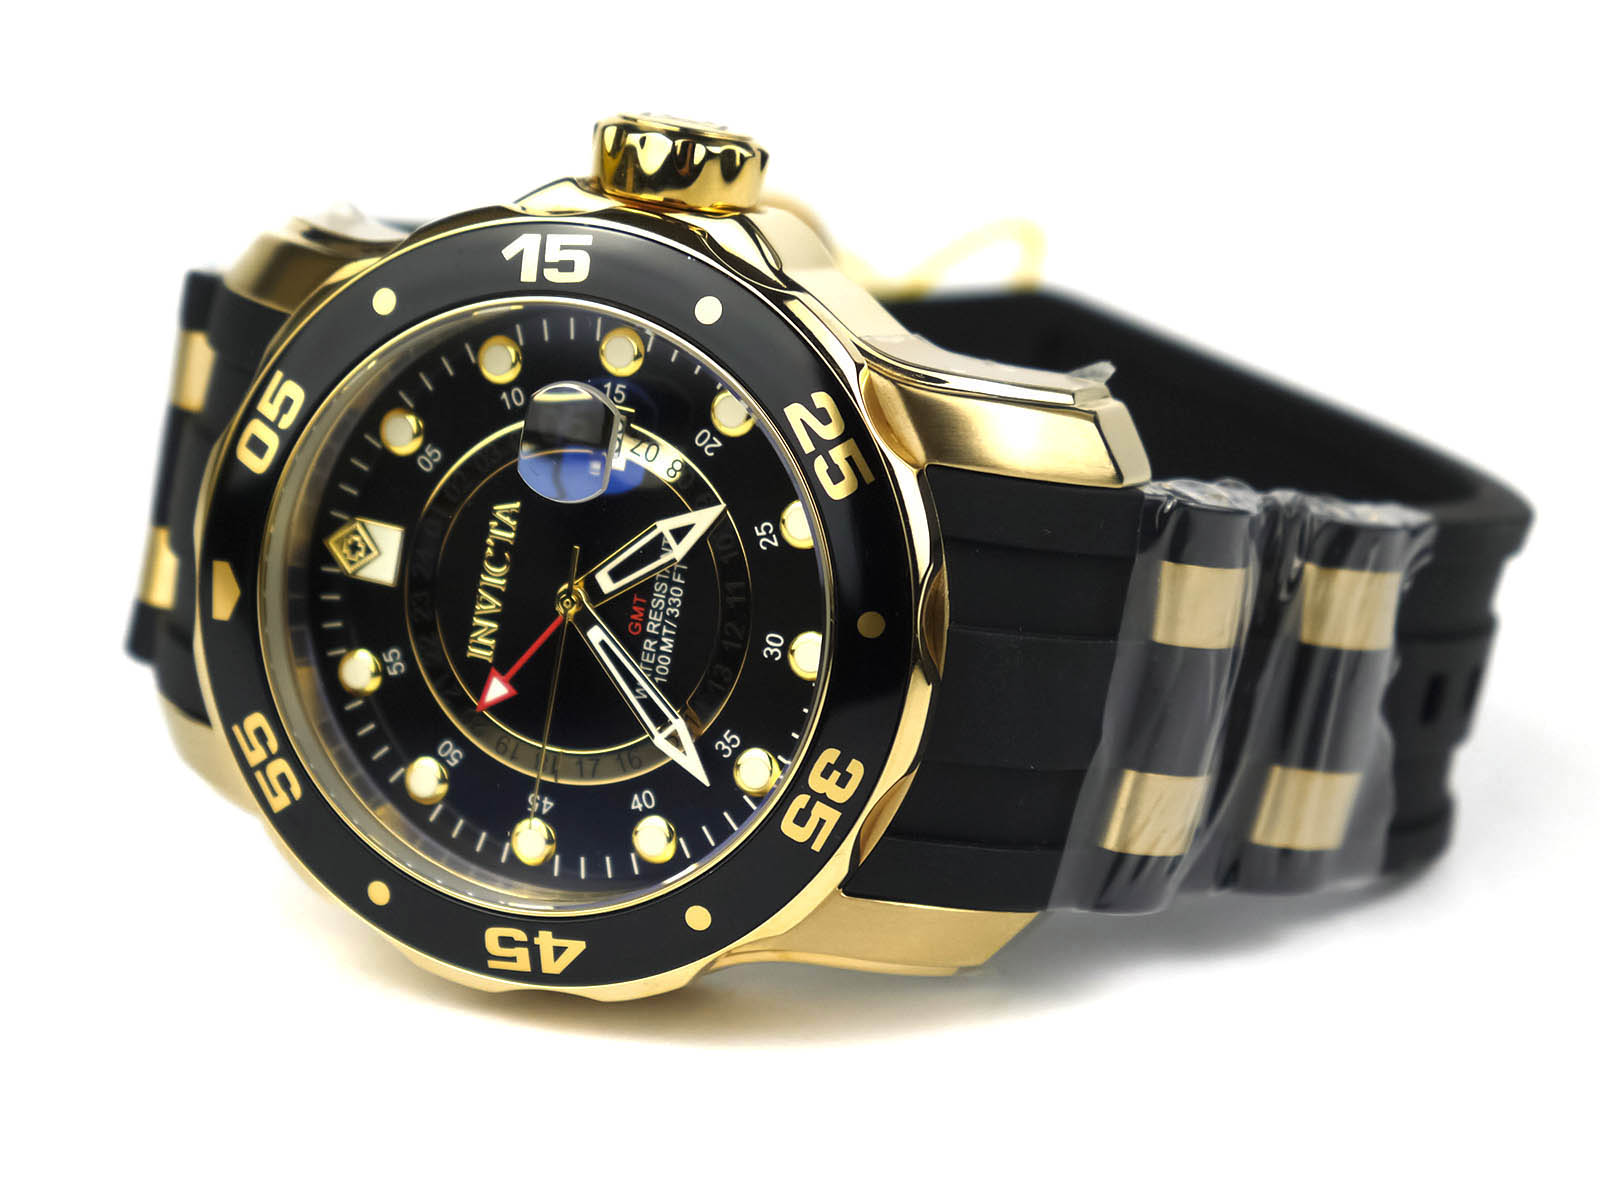 8a2d83cb75b3 Invicta 6991 Pro Diver Collection GMT 18k Gold-Plated Stainless Steel Watch  with Black Band